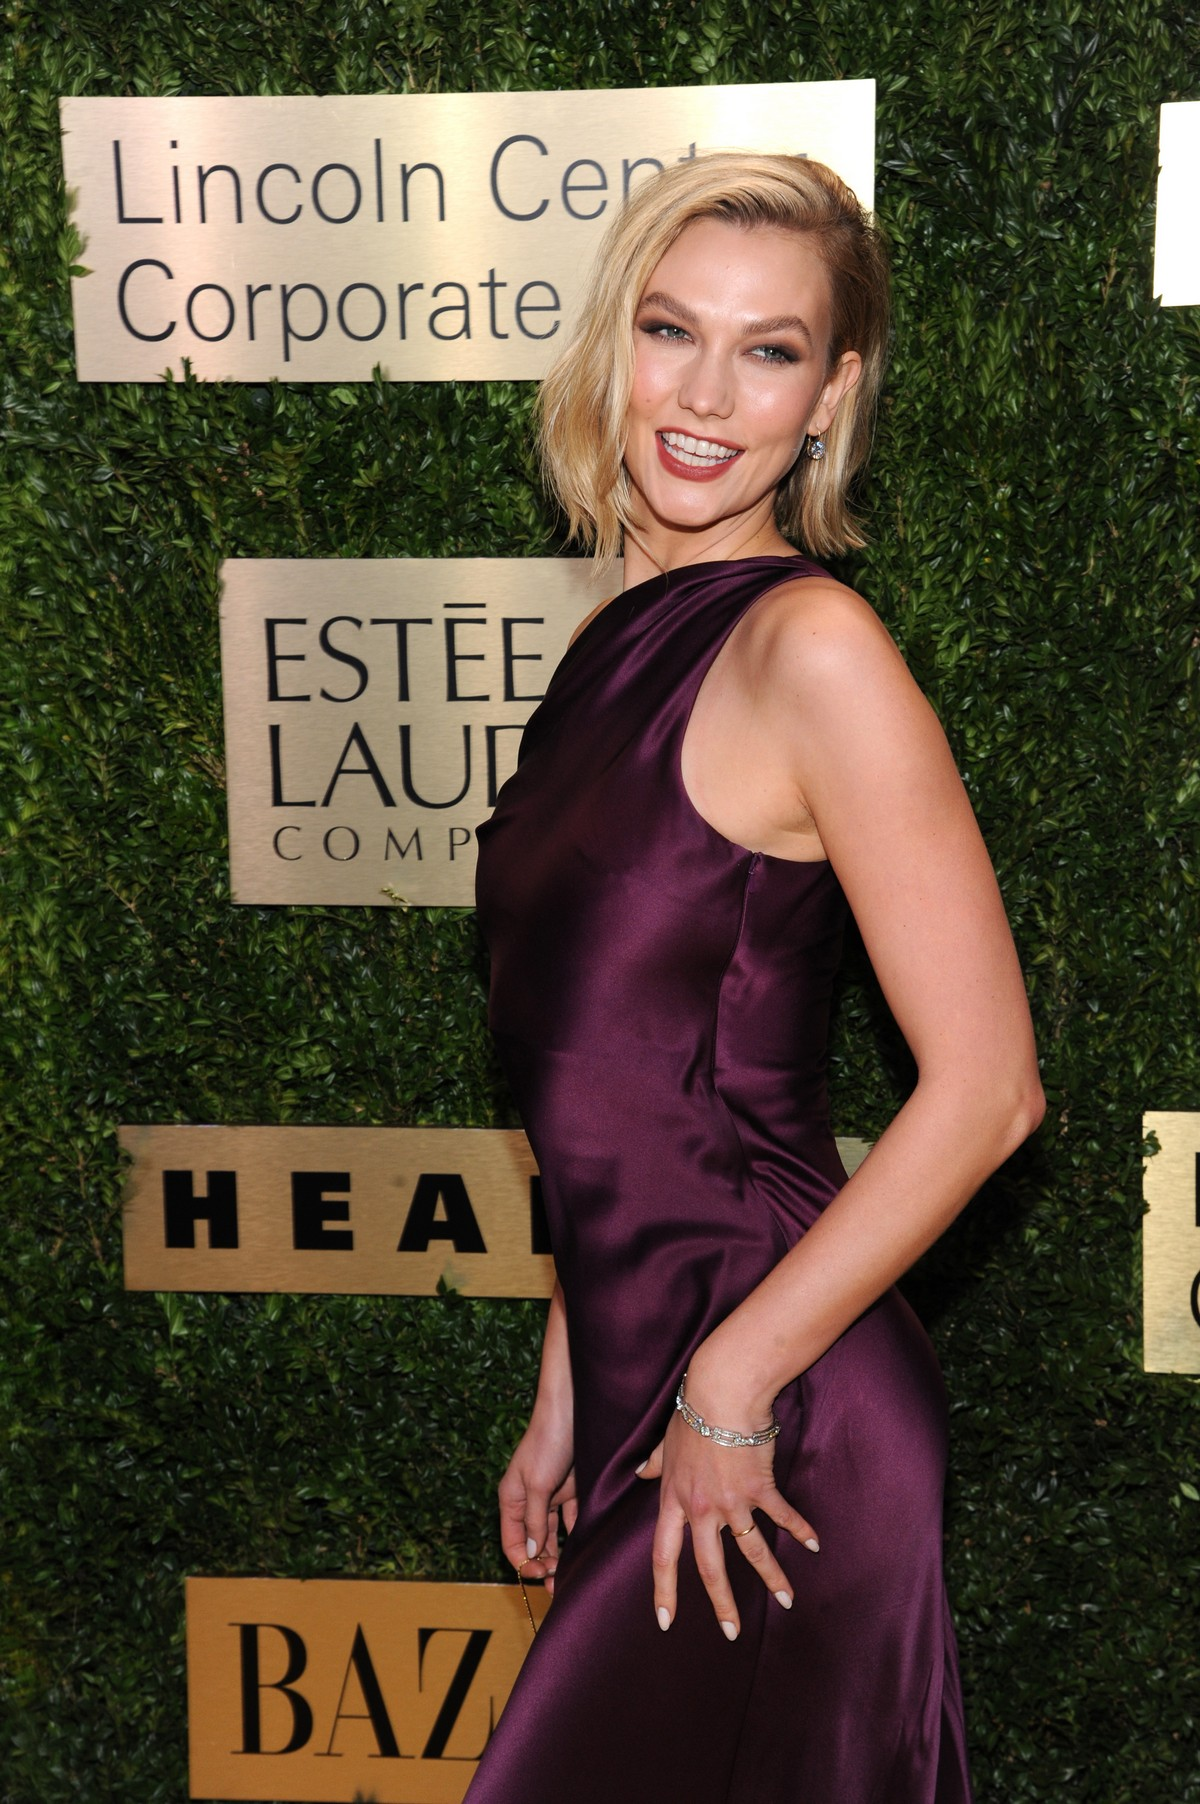 Karlie Kloss attends Lincoln Center Corporate Fashion Fund Gala in New York City 2019/11/18 4